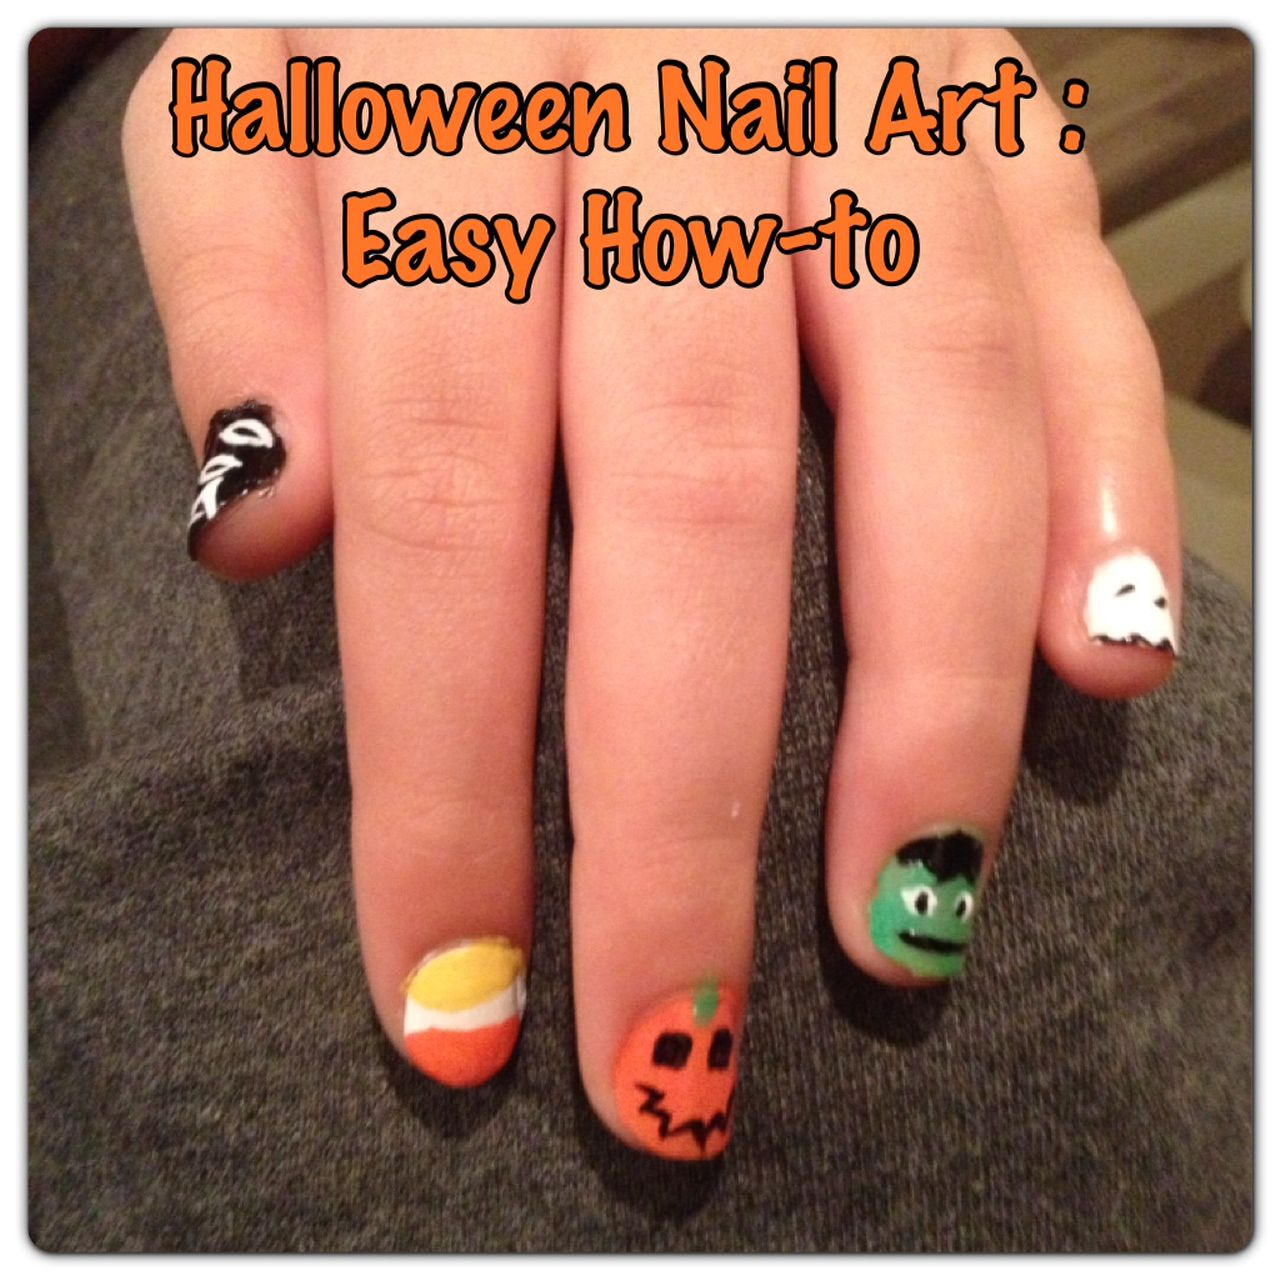 Halloween Nail Art: A simple How-to for 5 Fun Designs